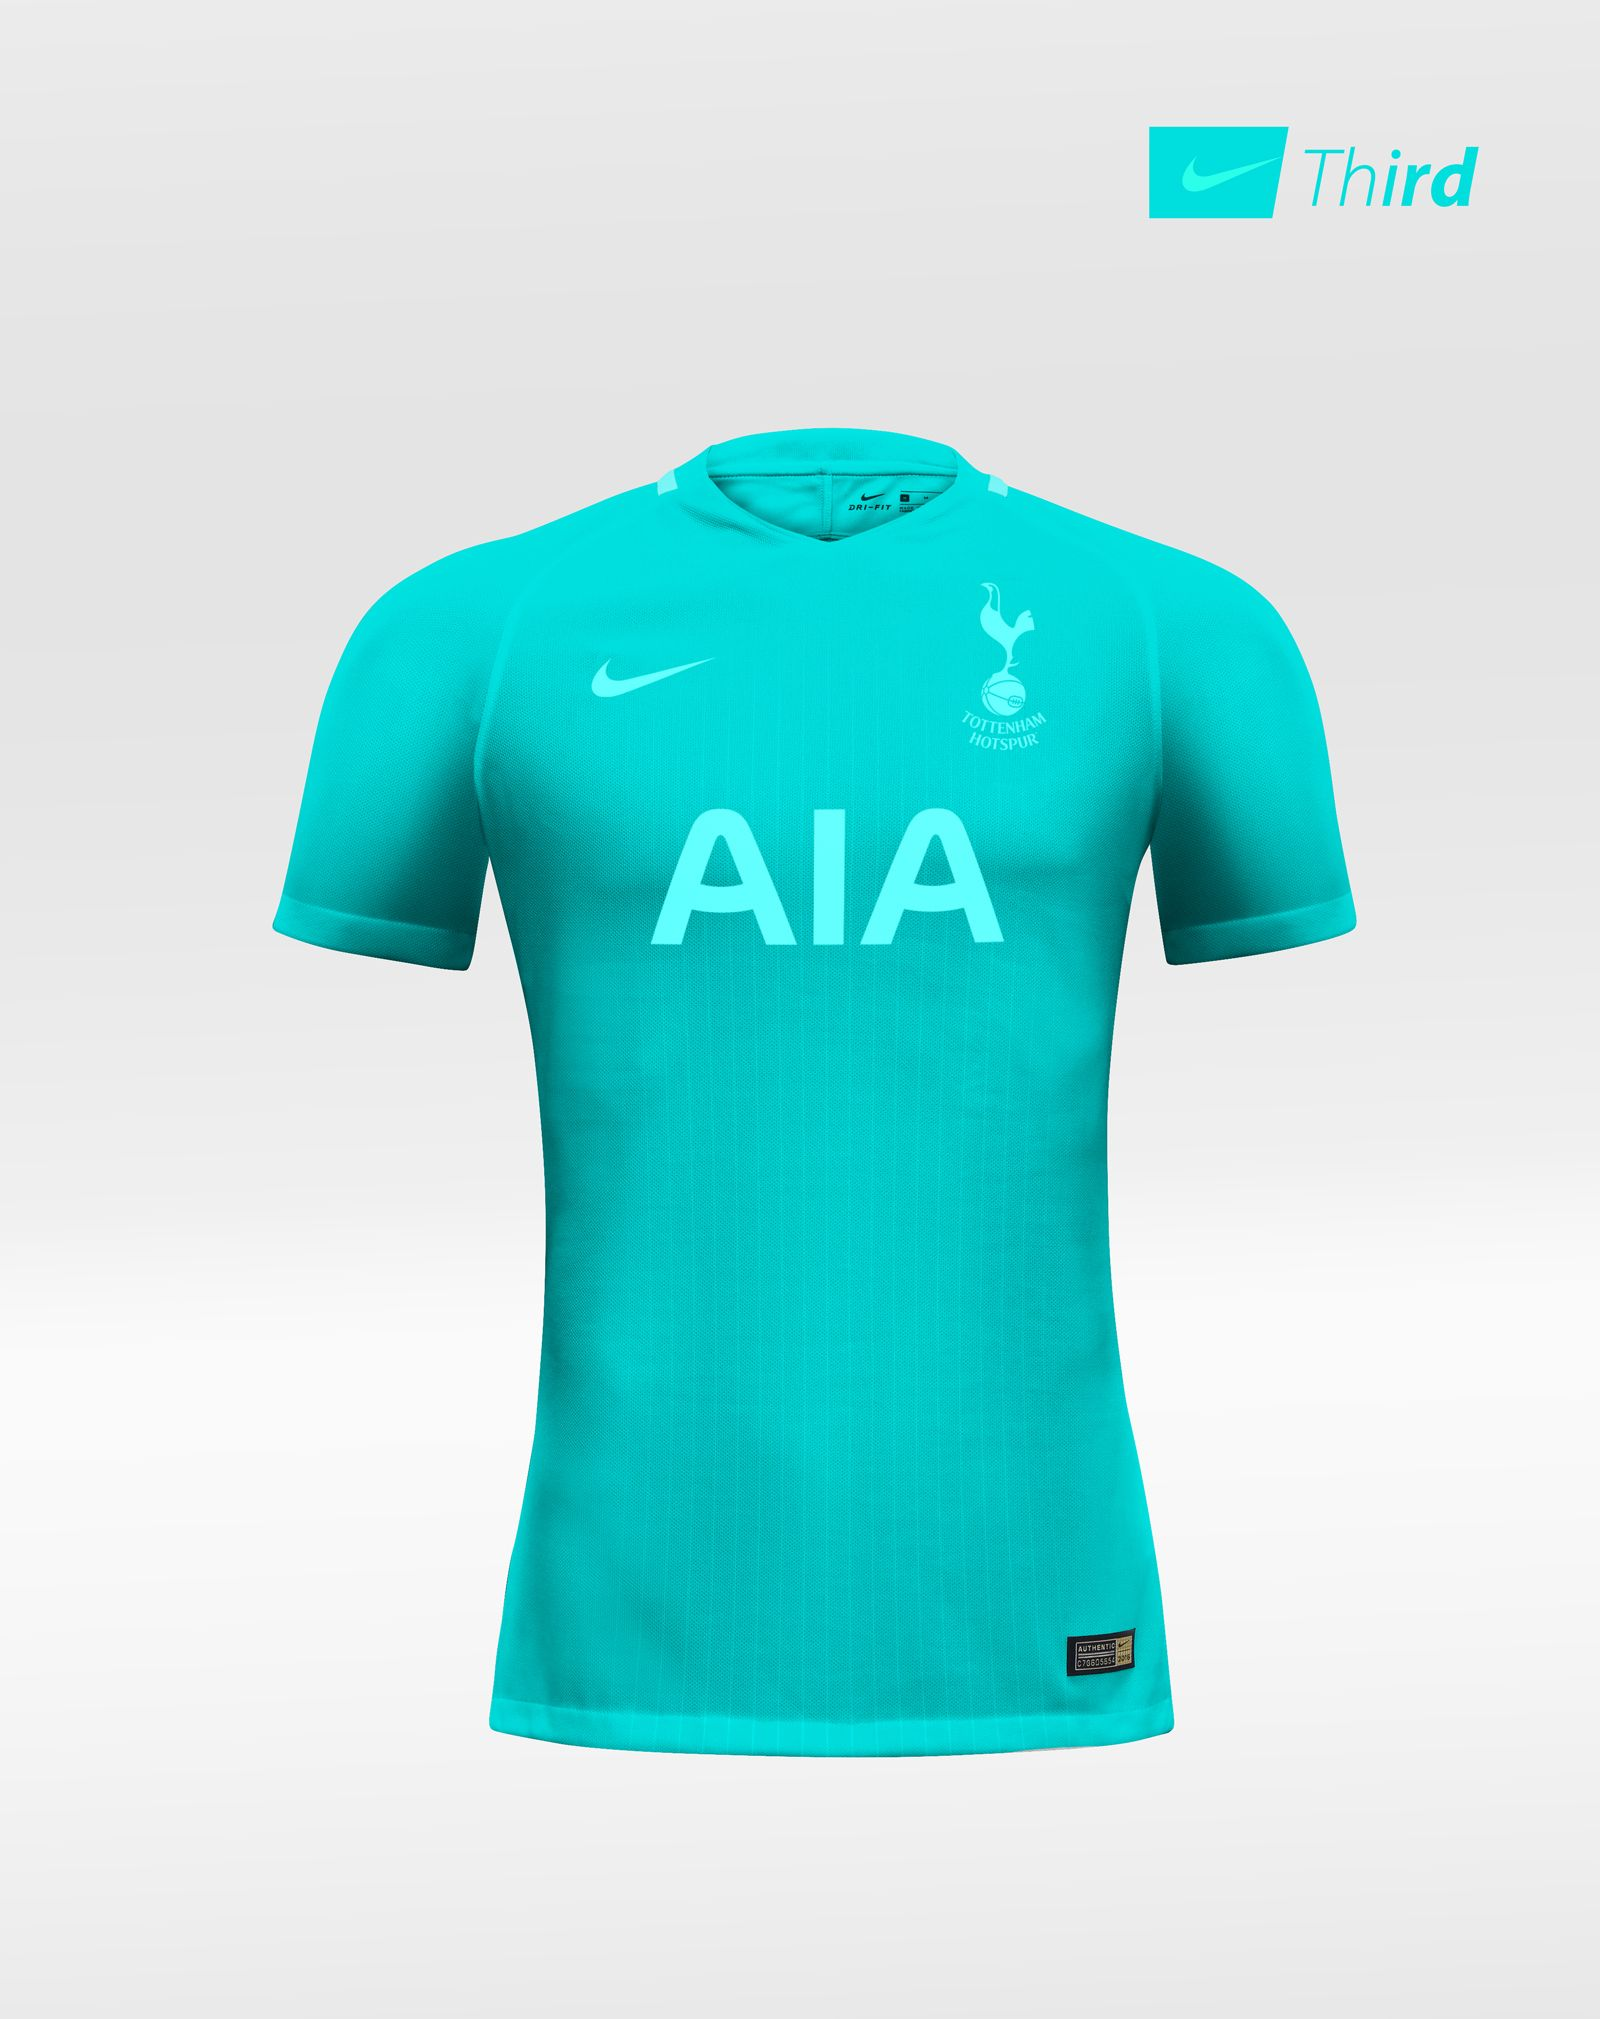 Tottenham Hotspur FC kits with Nike as an apparel. I personally designed  them as a passion of football. f78c53620